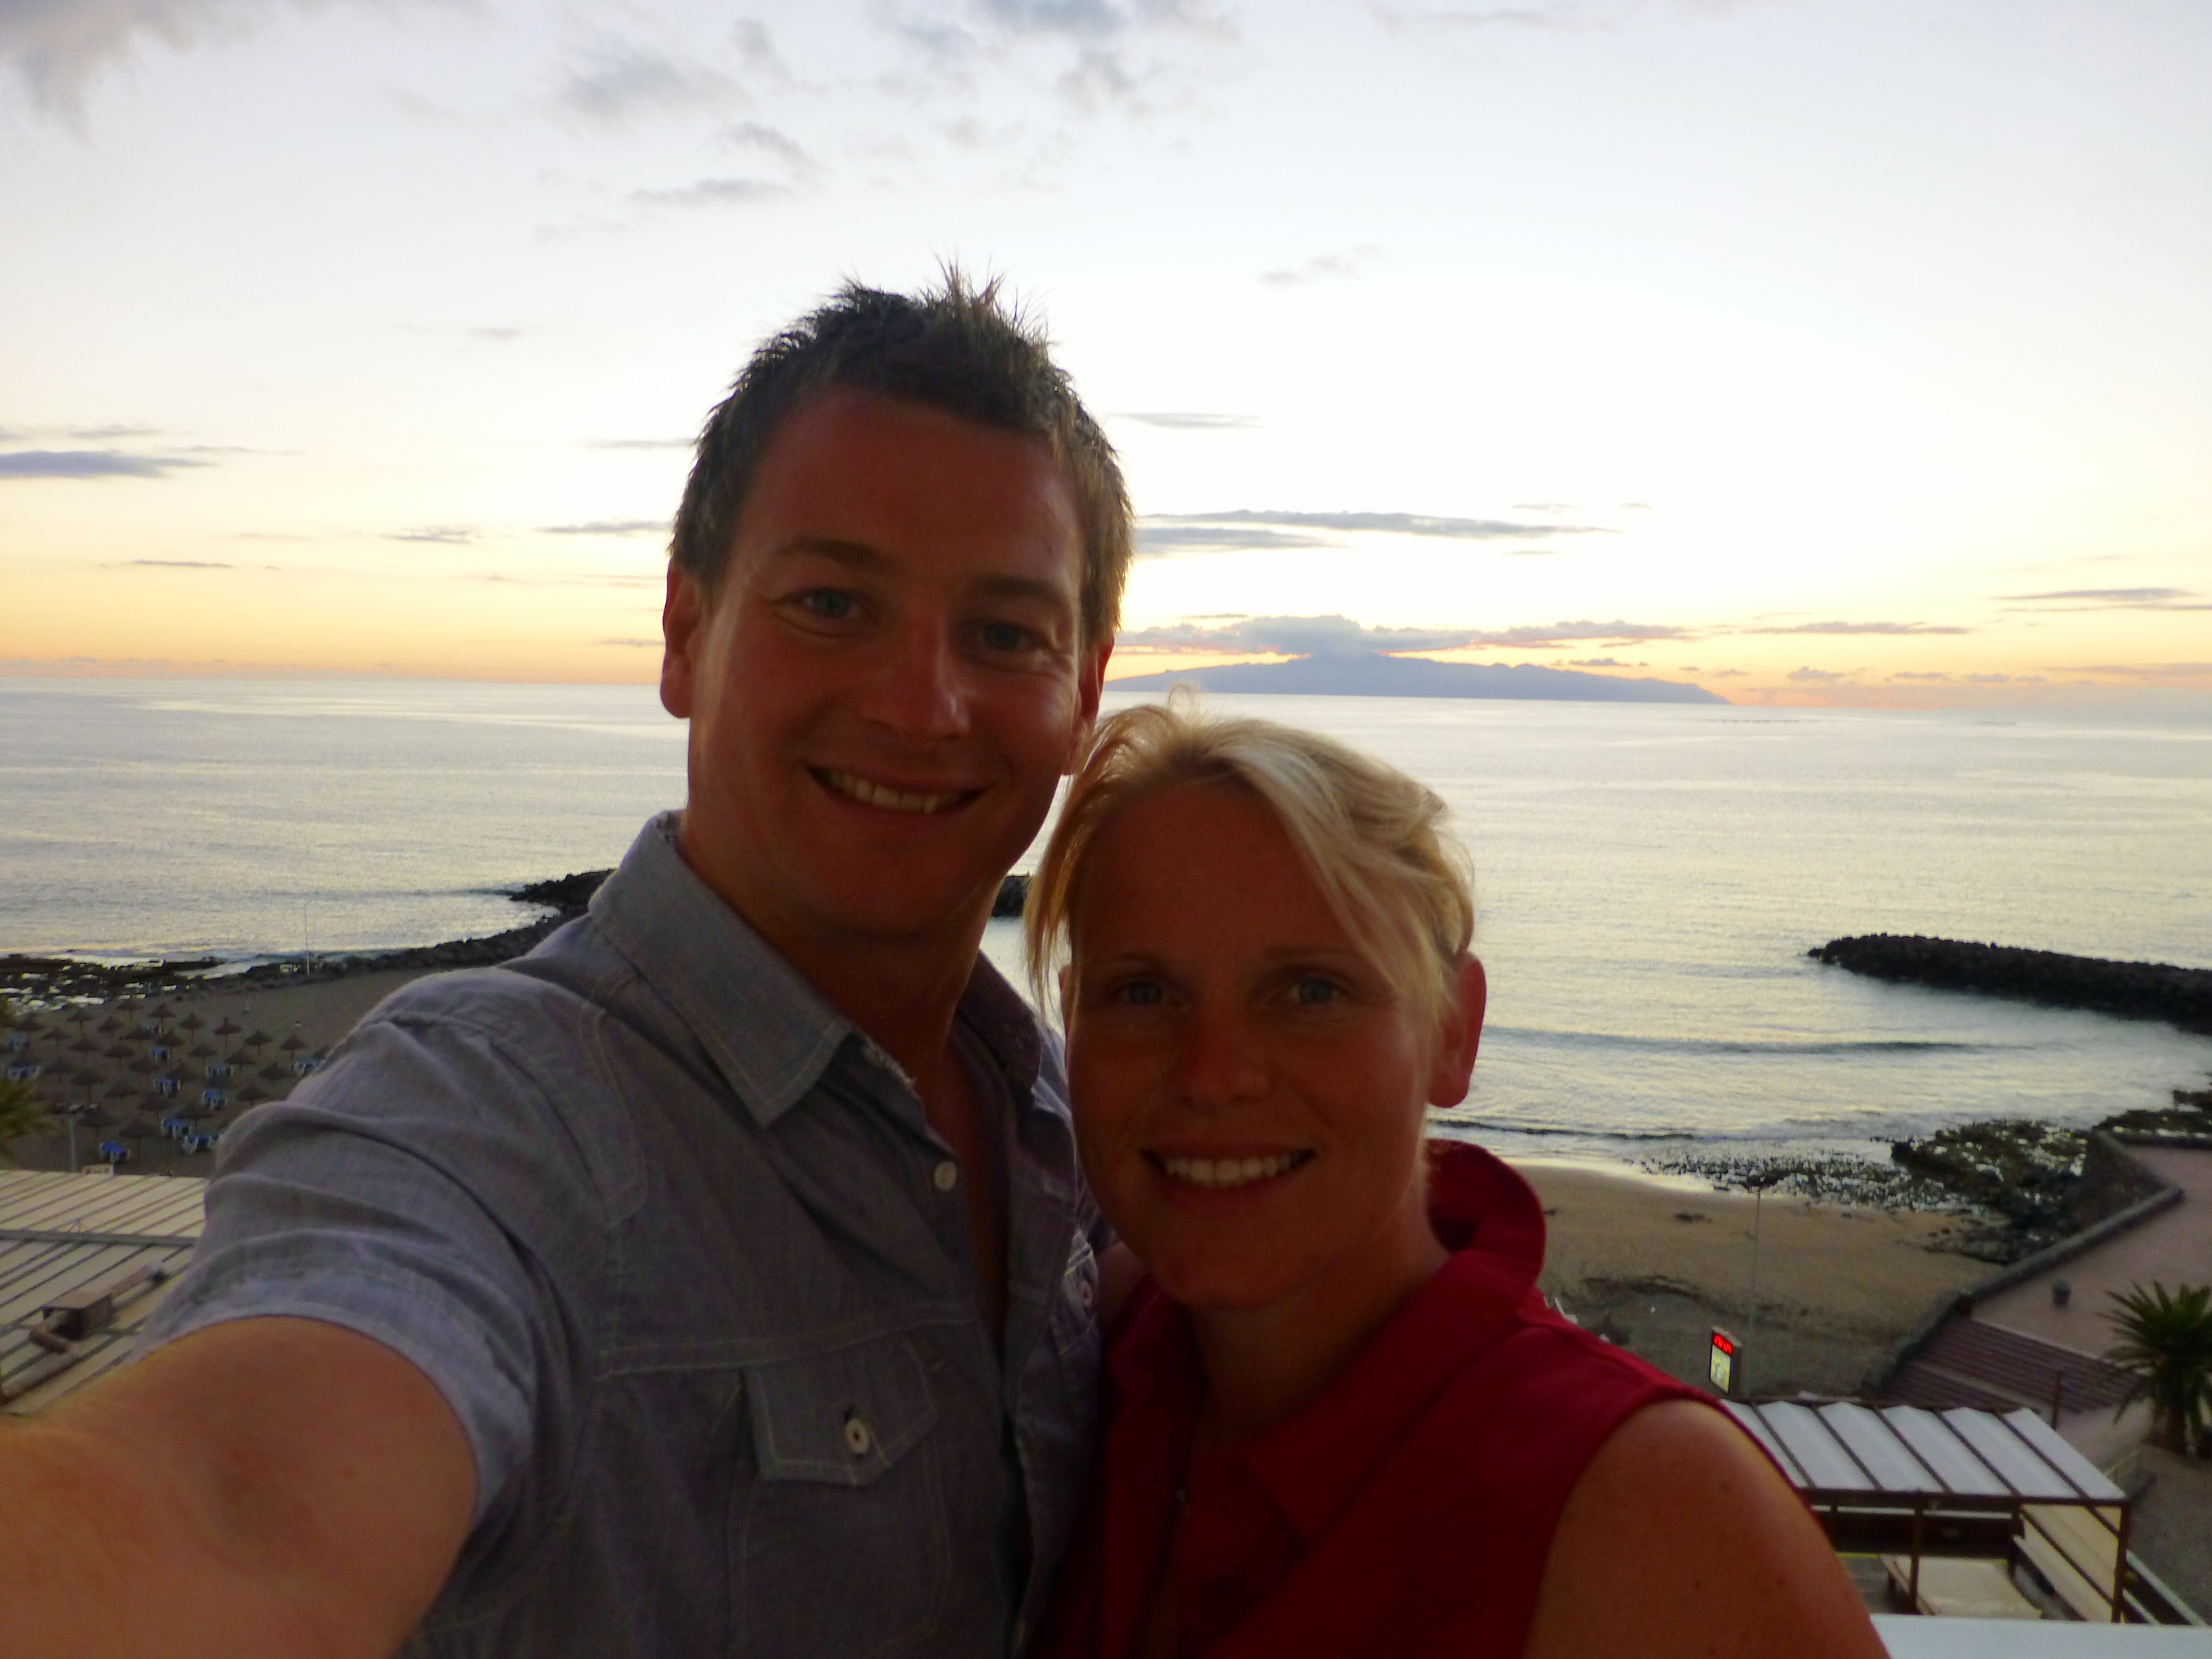 Chris Hutchon and his wife Kirstine in Tenerife last year